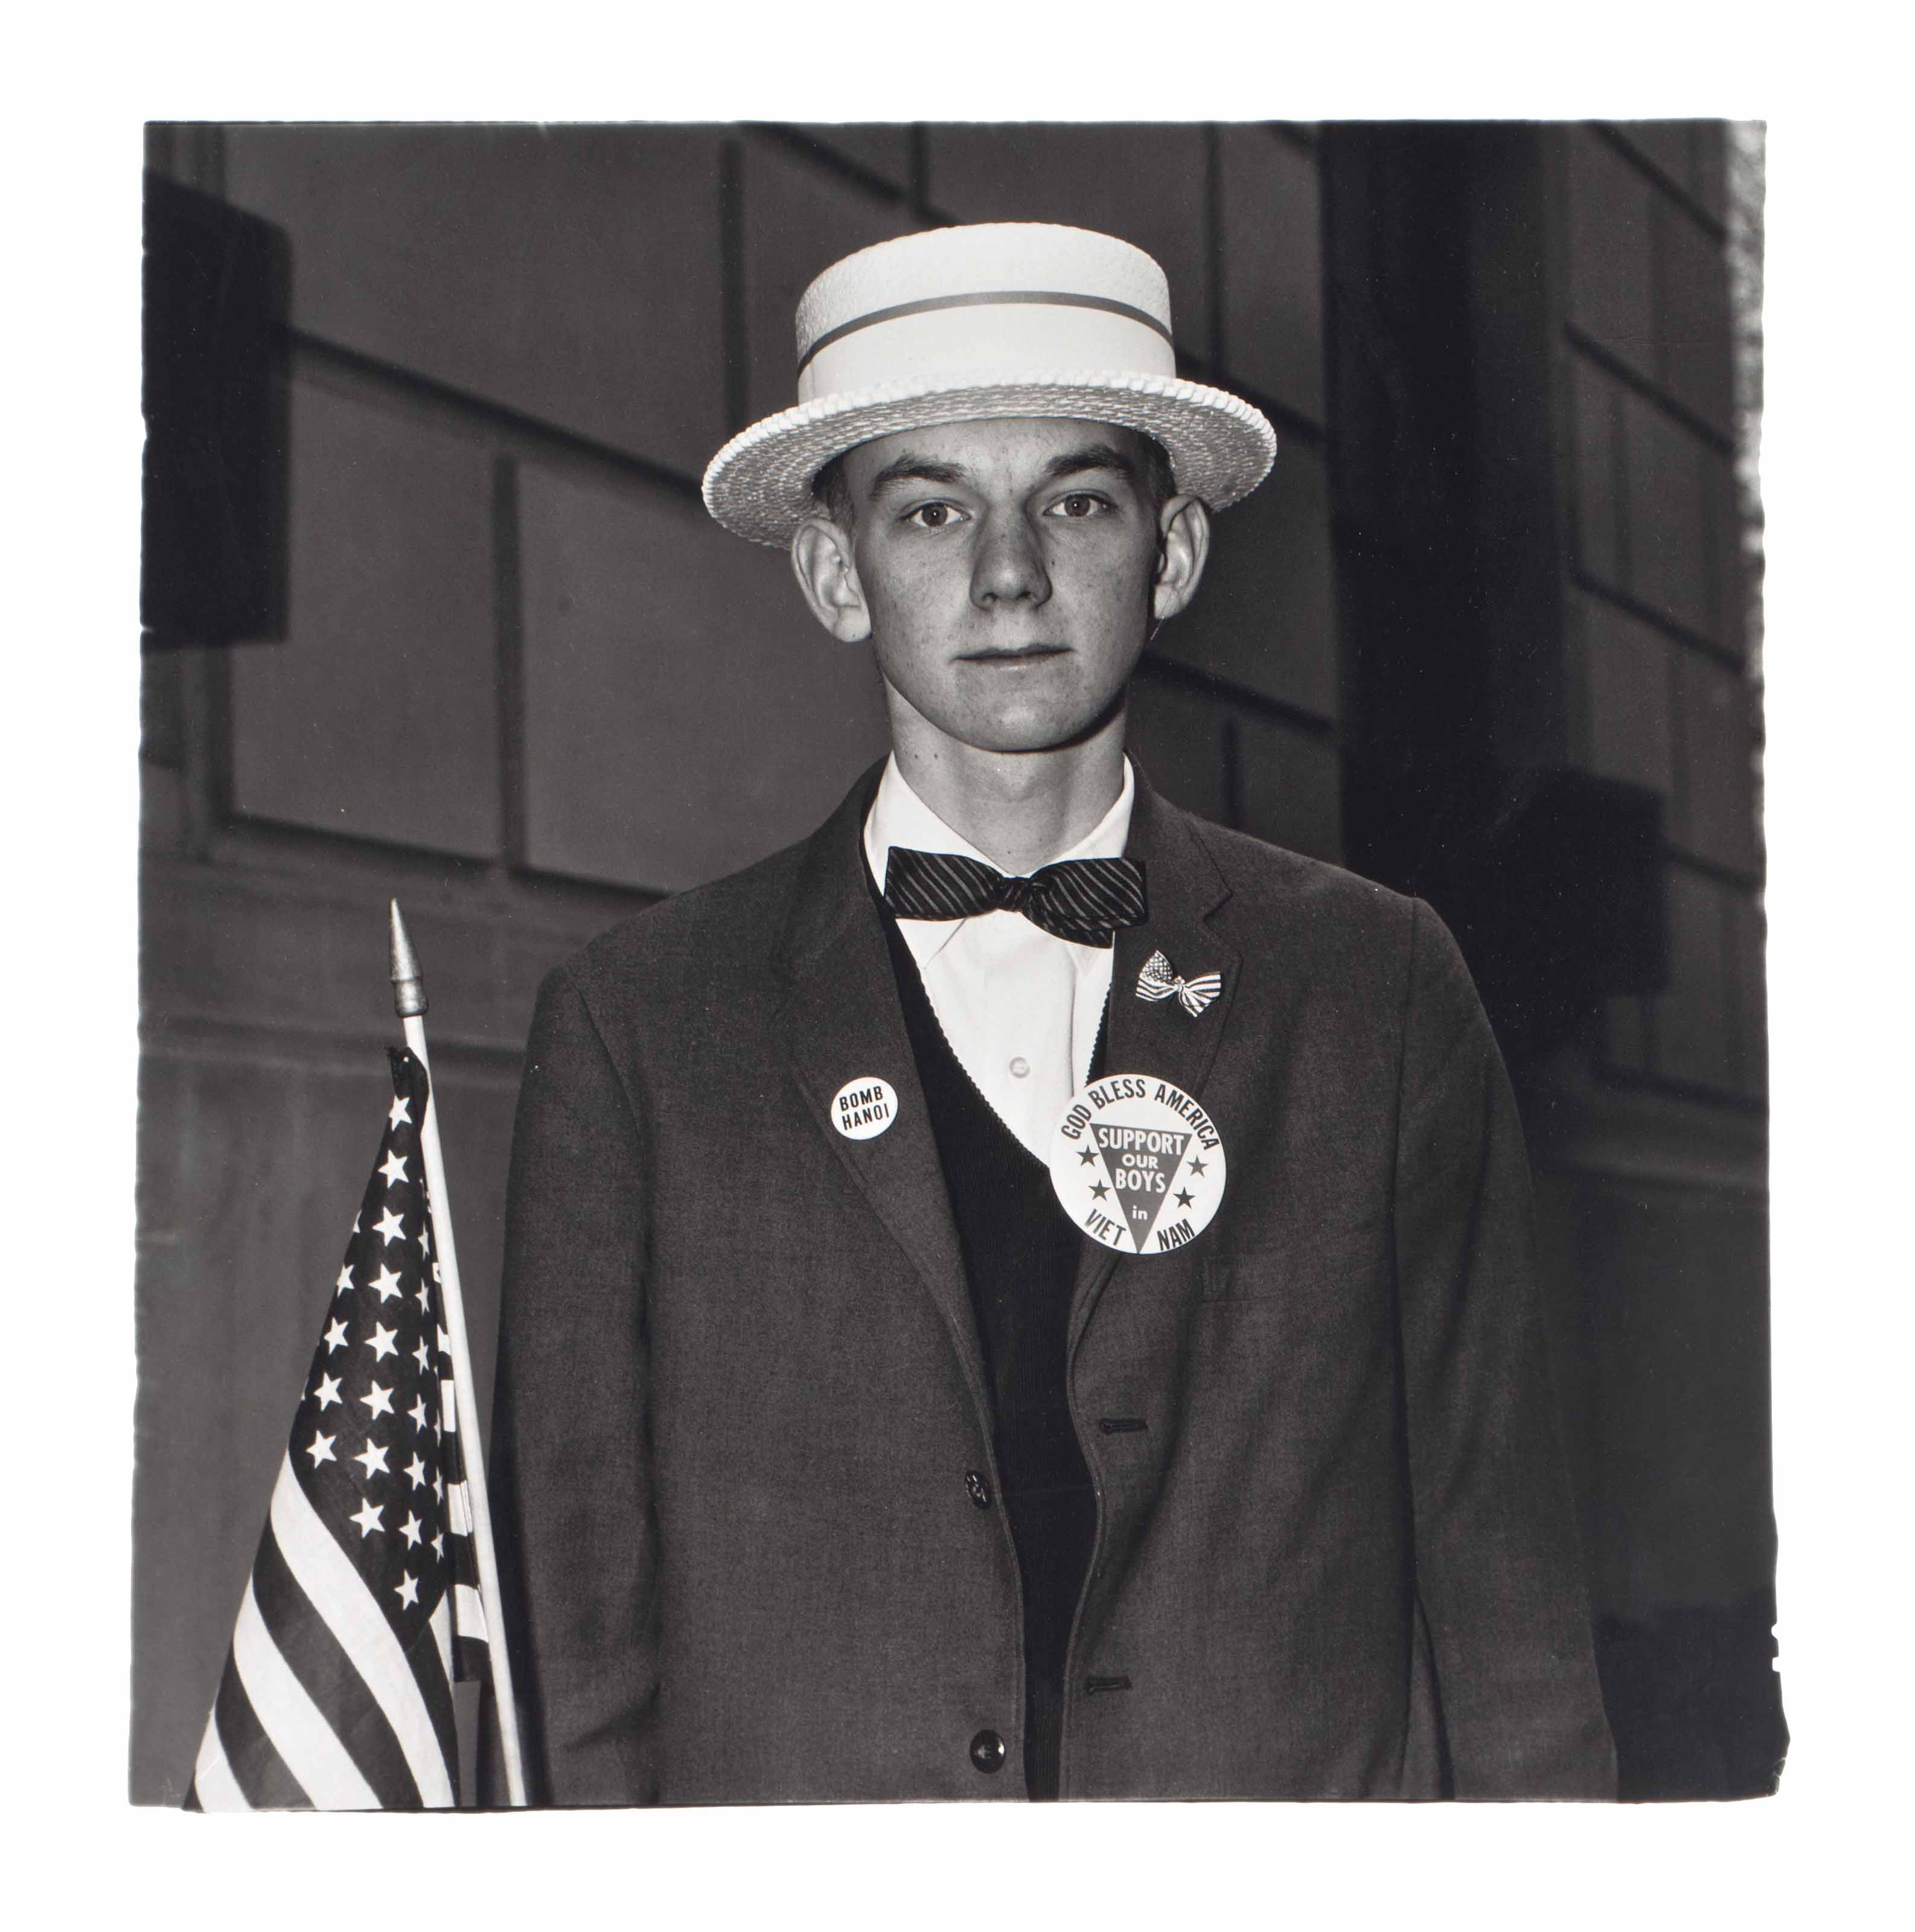 Boy with a straw hat waiting to march in a pro-war parade, N.Y.C., 1967